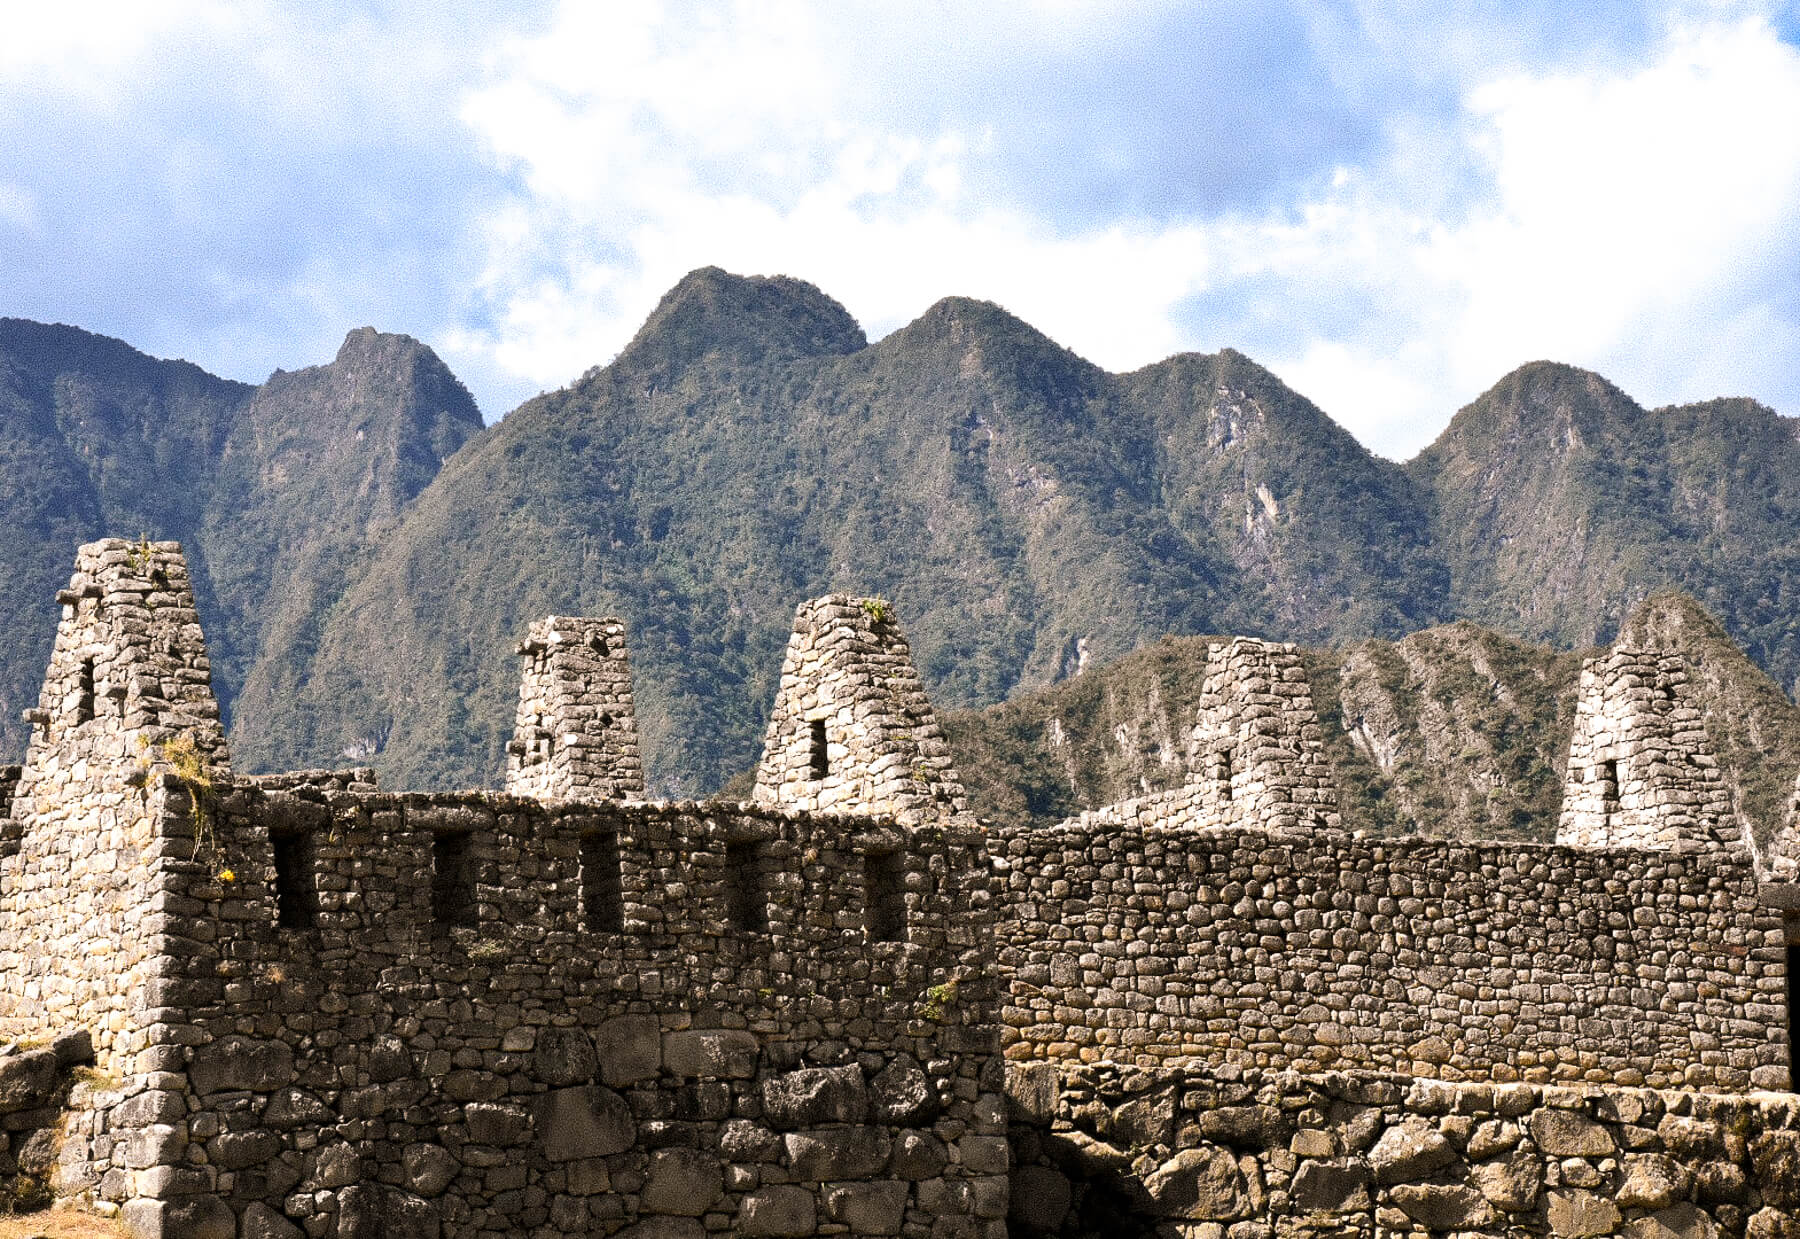 Looking over the top of stone ruins with the huge mountains towering behind them